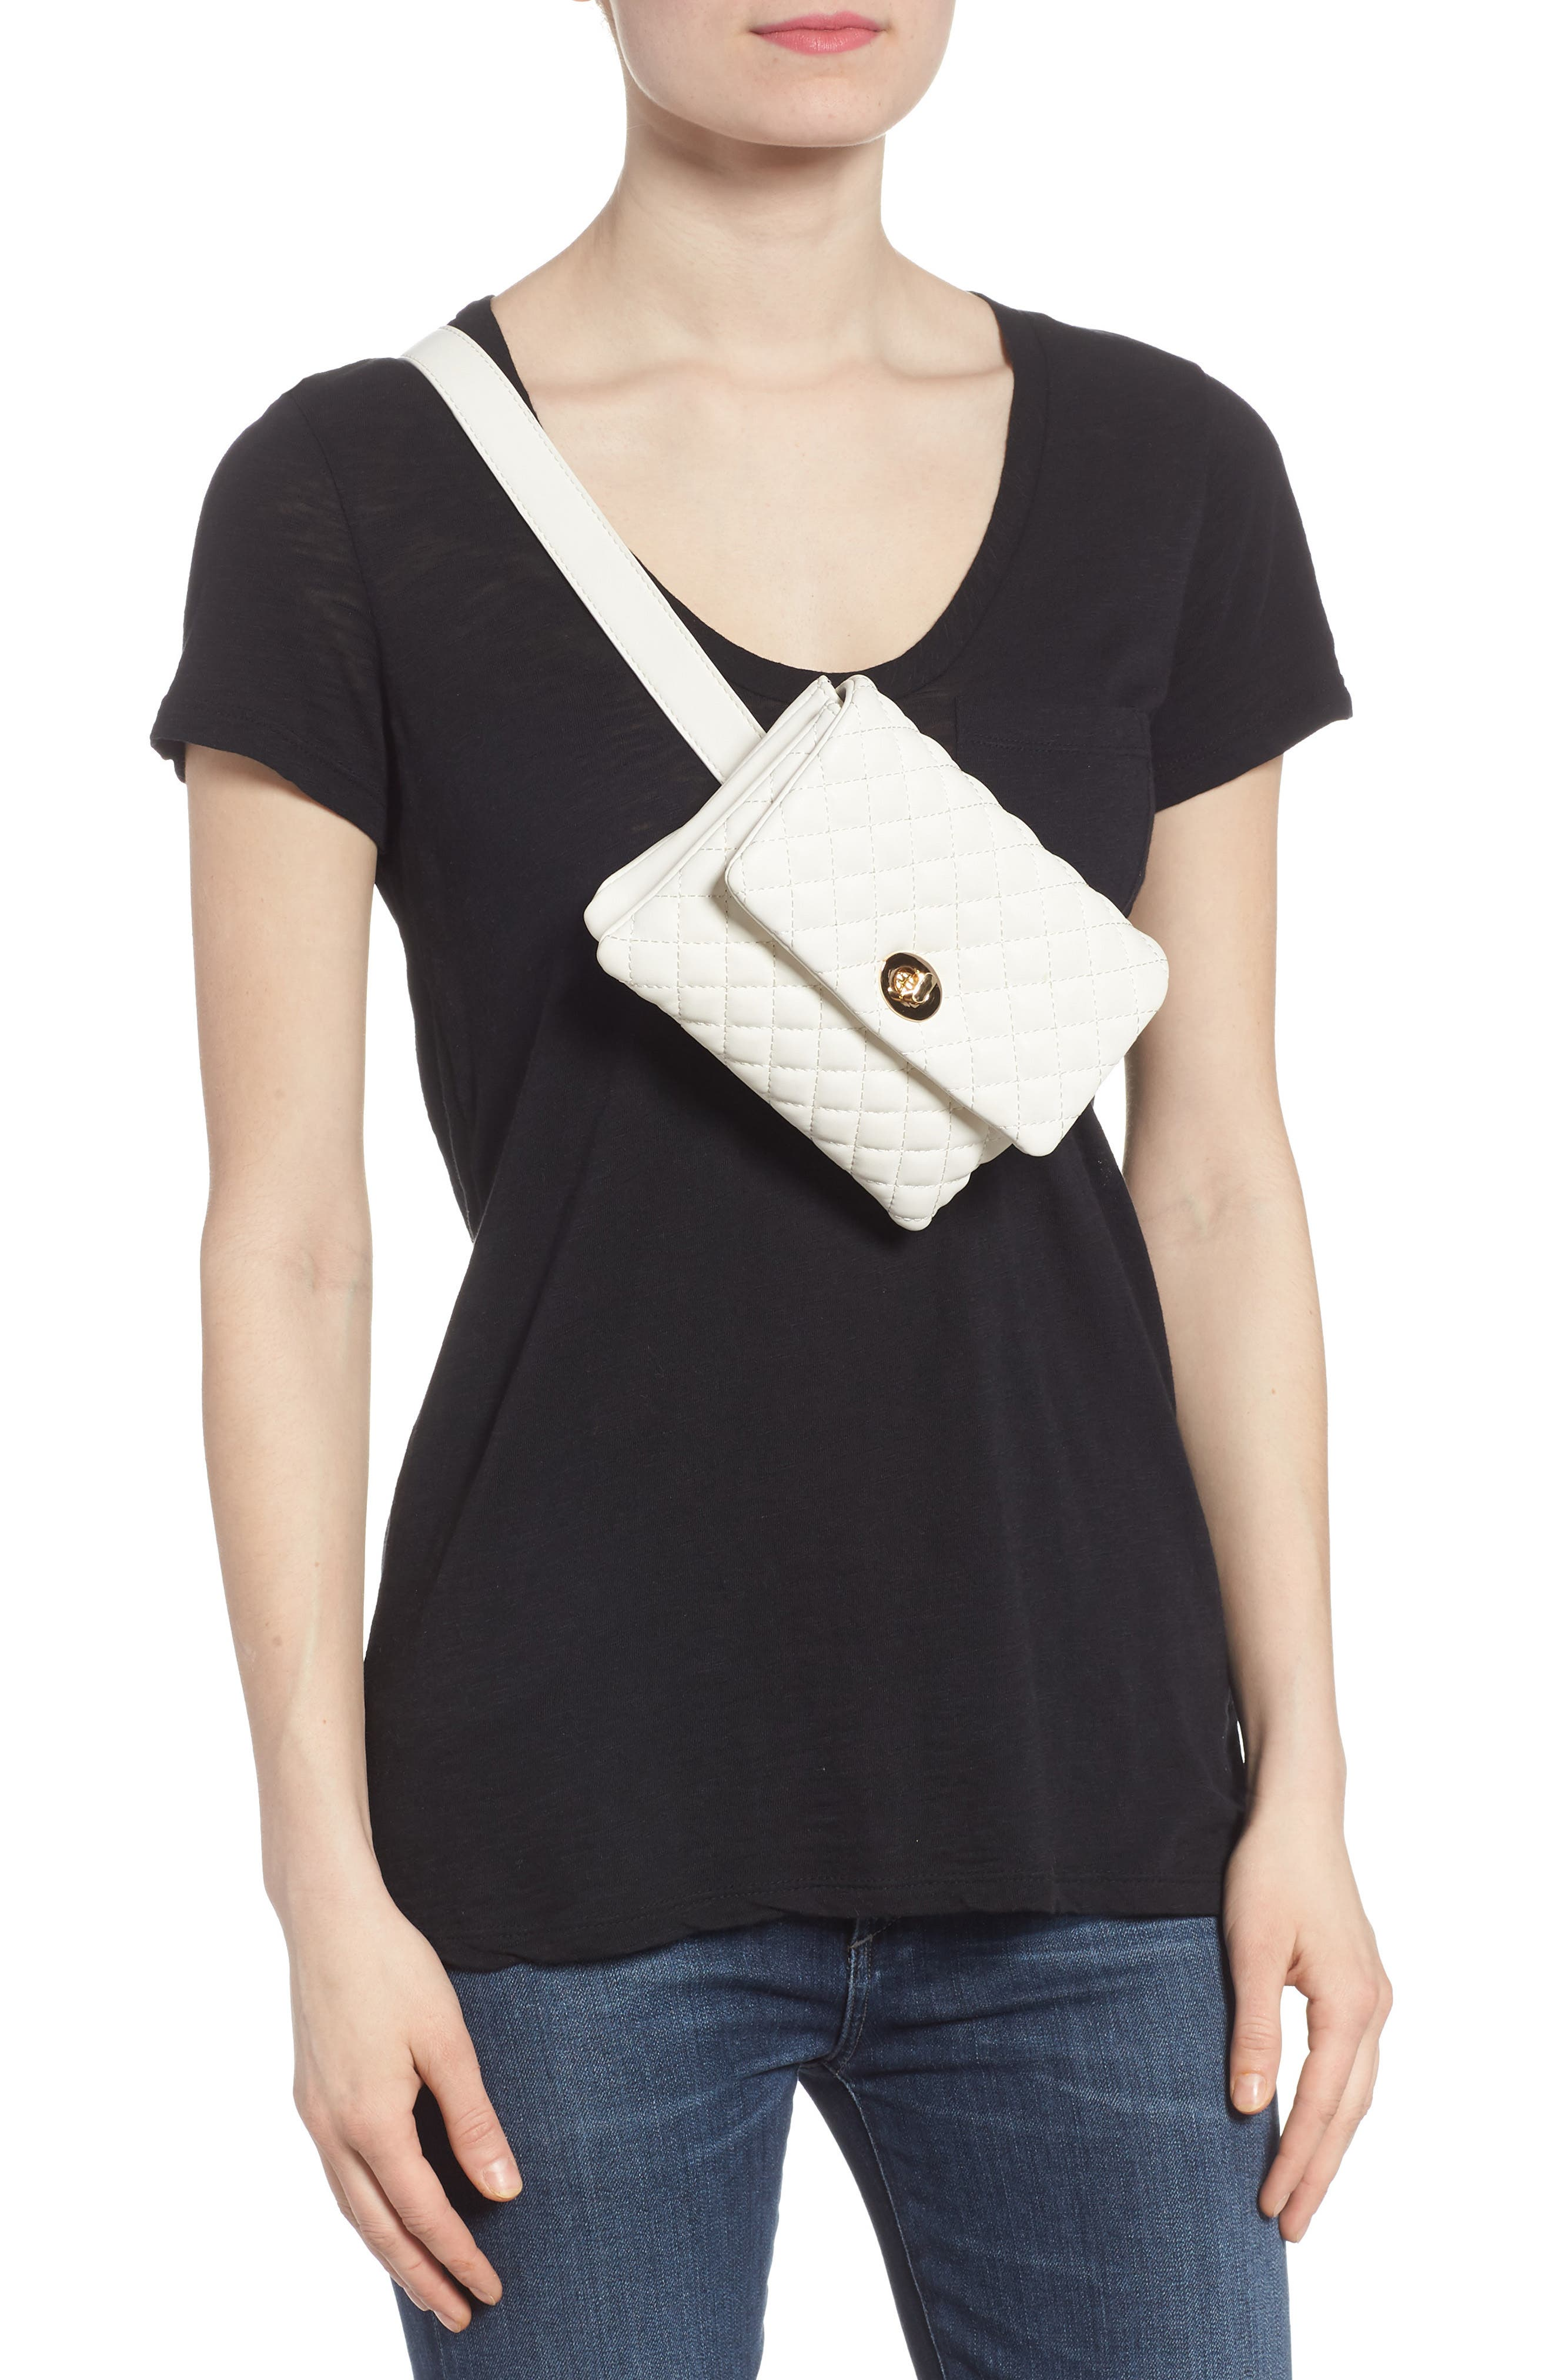 Mali + Lili Quilted Vegan Leather Convertible Belt Bag,                             Alternate thumbnail 3, color,                             WHITE